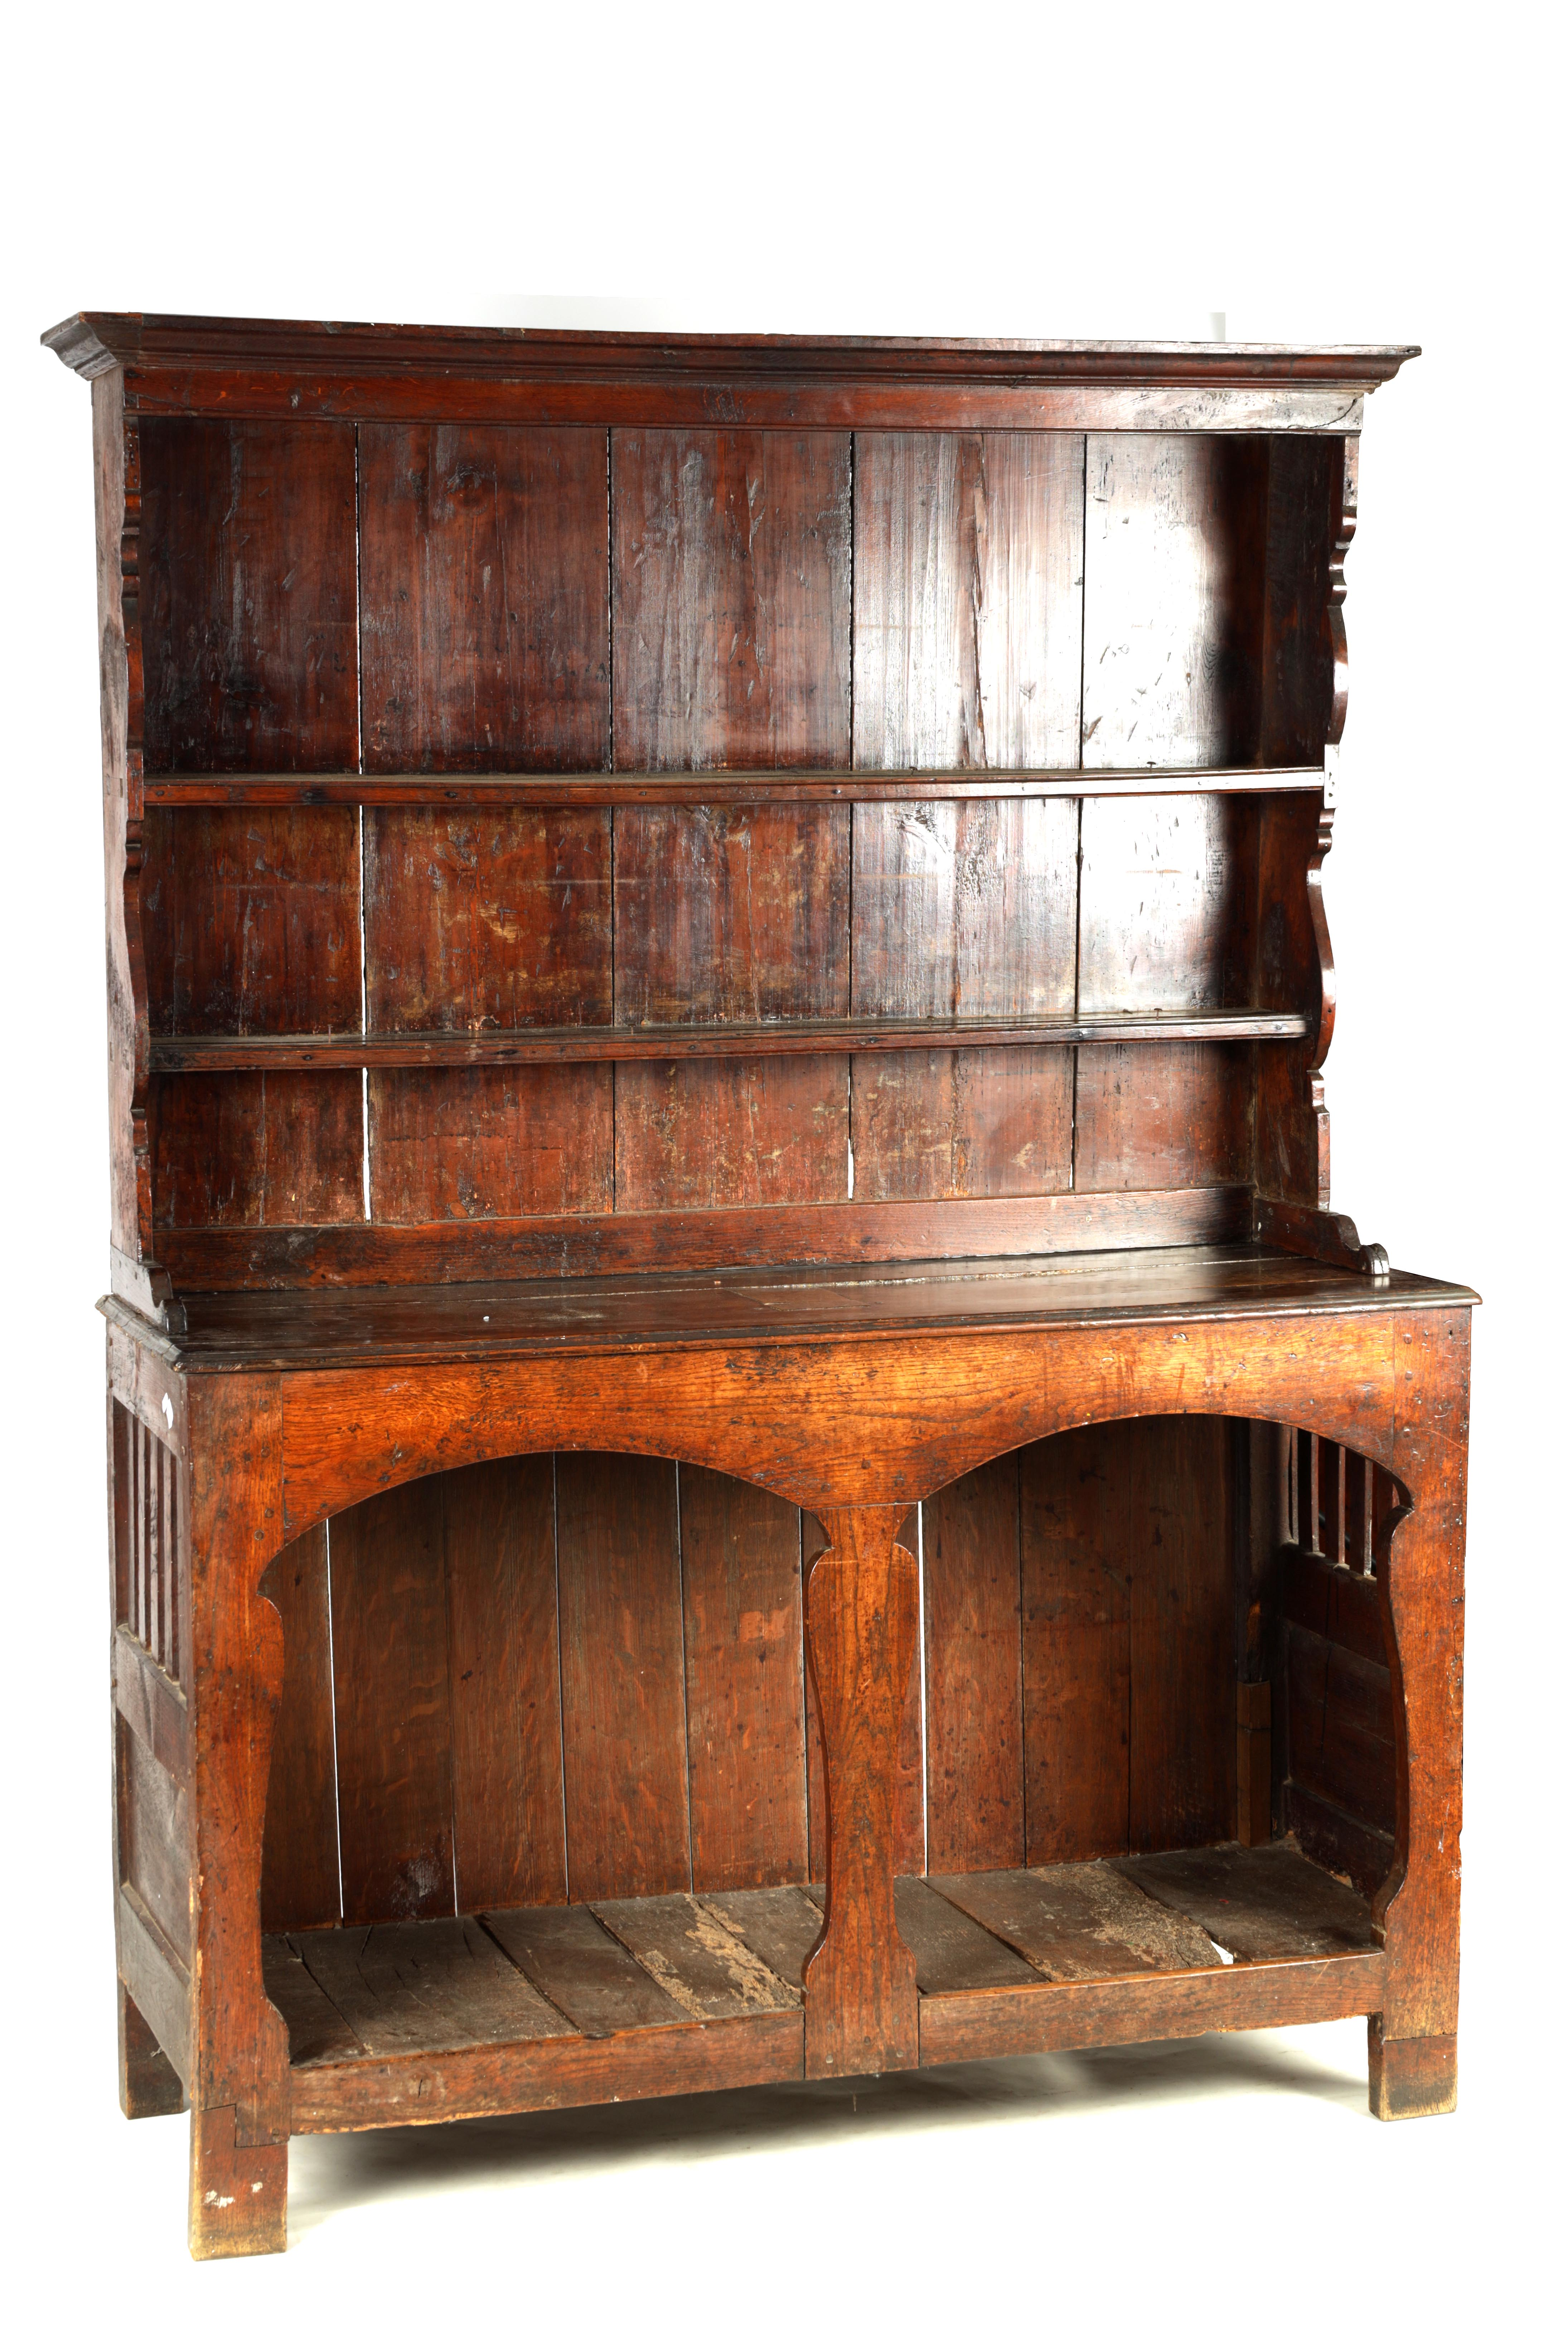 AN EARLY 18TH CENTURY SILHOUETTE LEG OAK DRESSER AND RACK with shaped moulded rack fitted two - Image 2 of 10